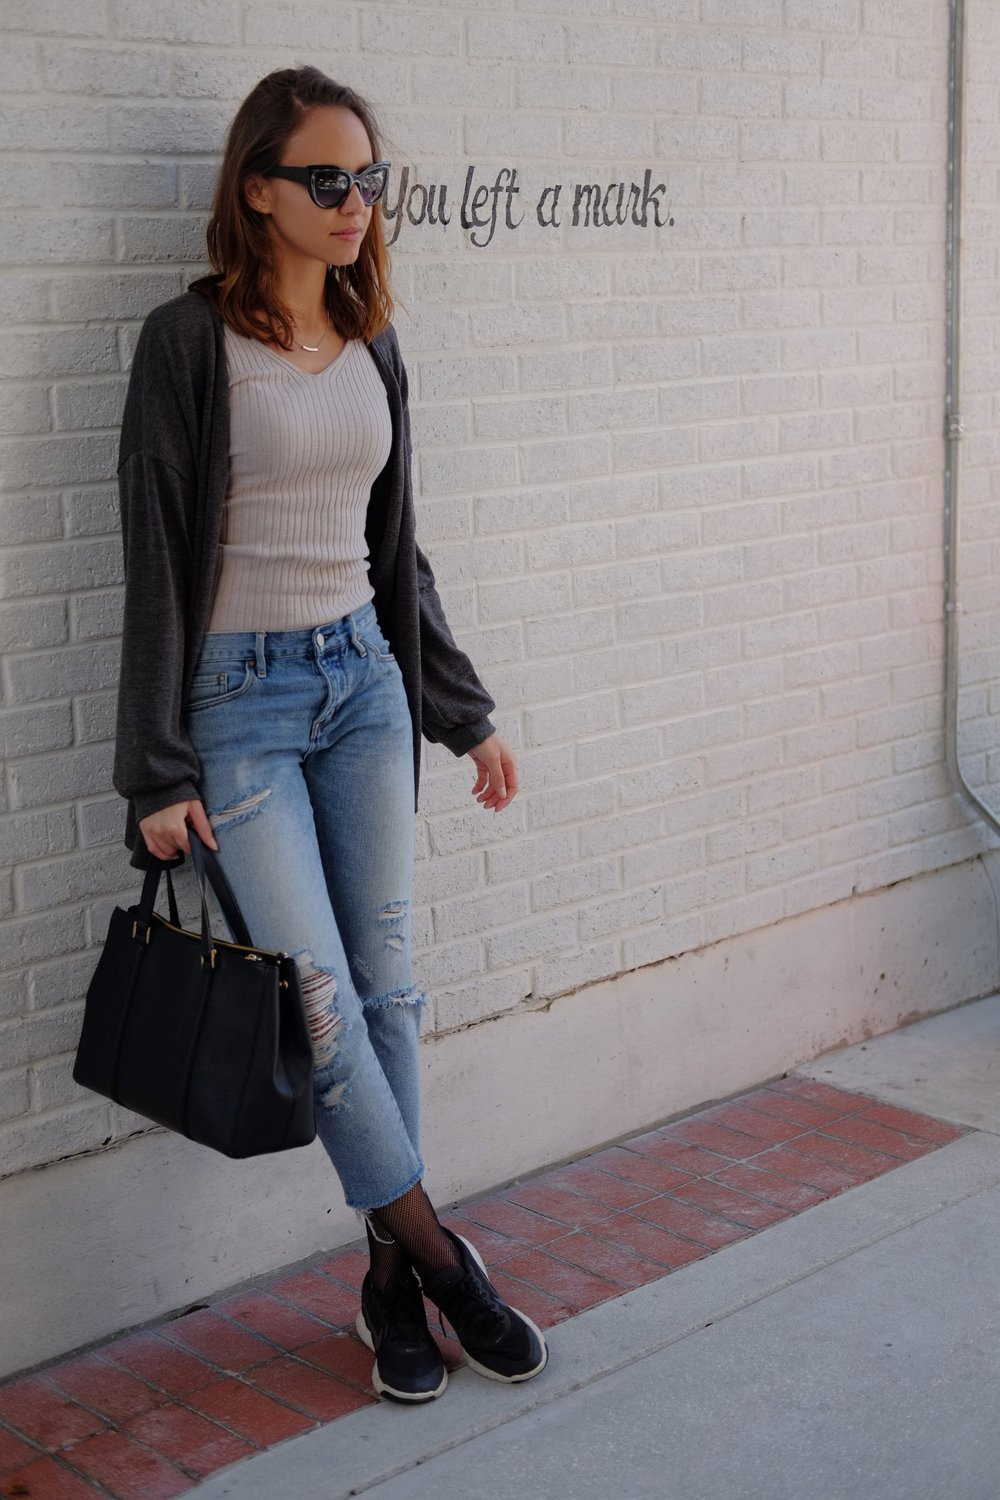 Cardigan  American Eagle (I think)  | Top  Express  | Jeans  Pac Sun